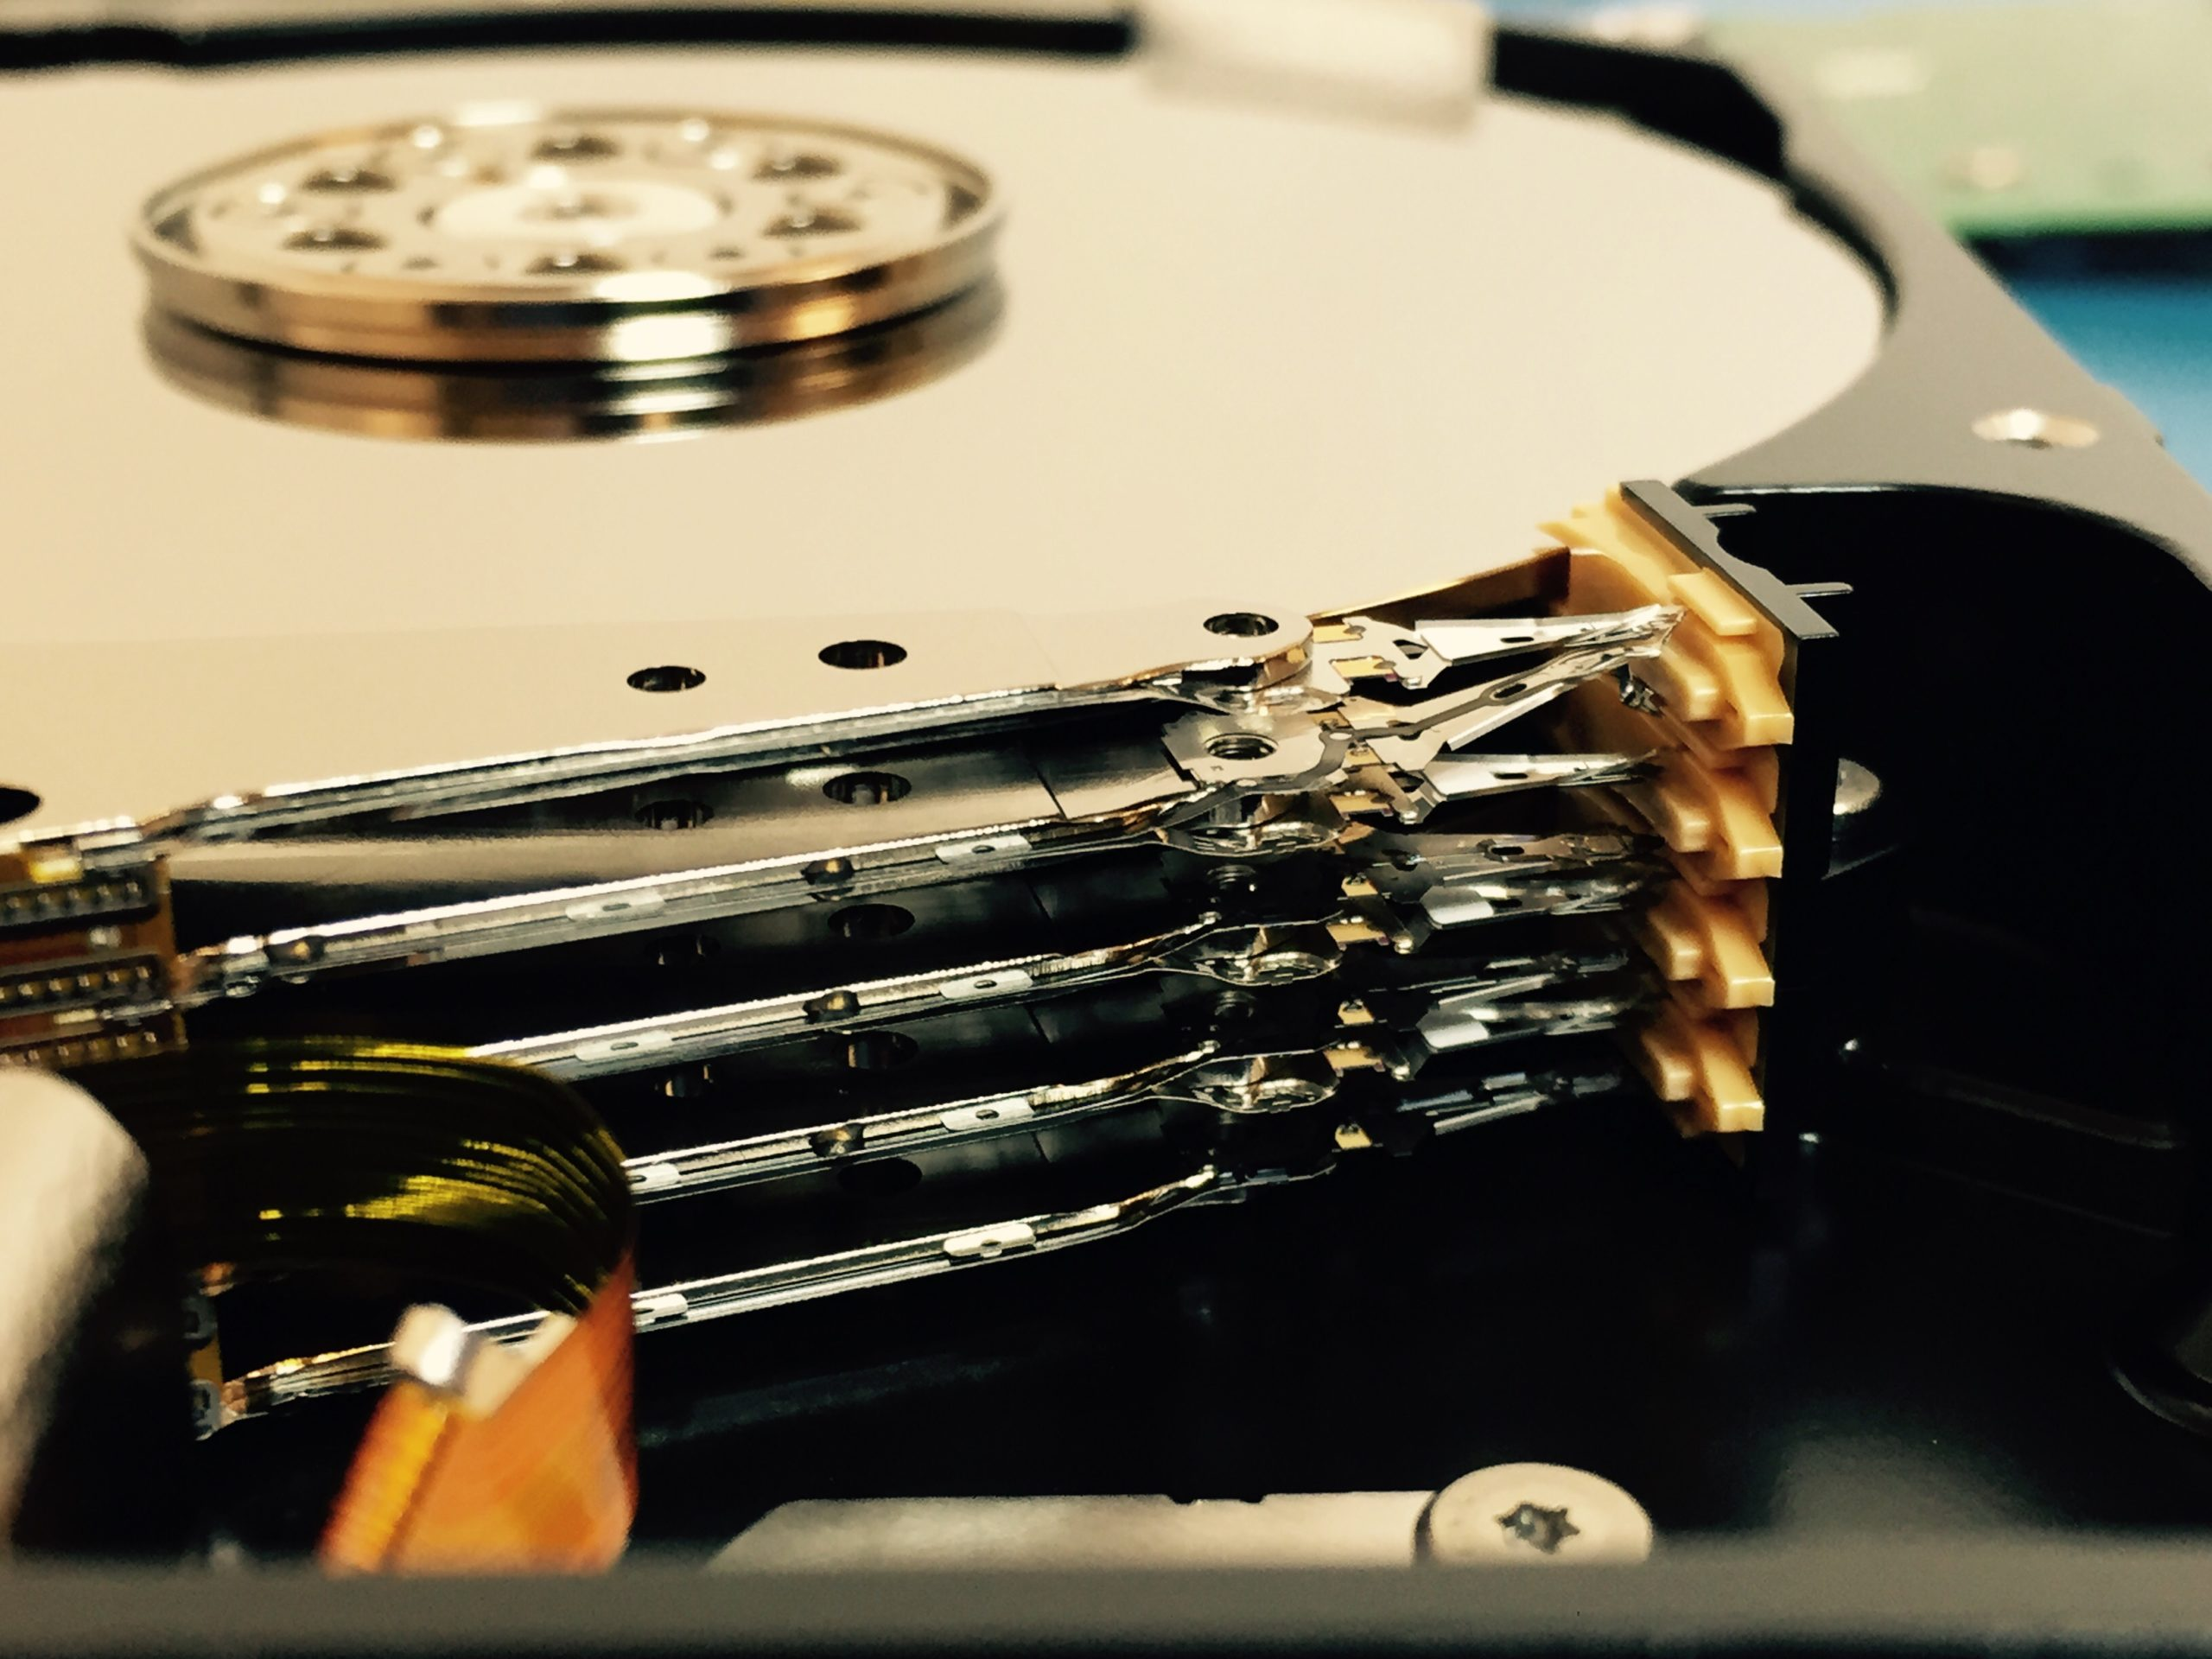 How To Fix A Dropped Hard Drive Read First